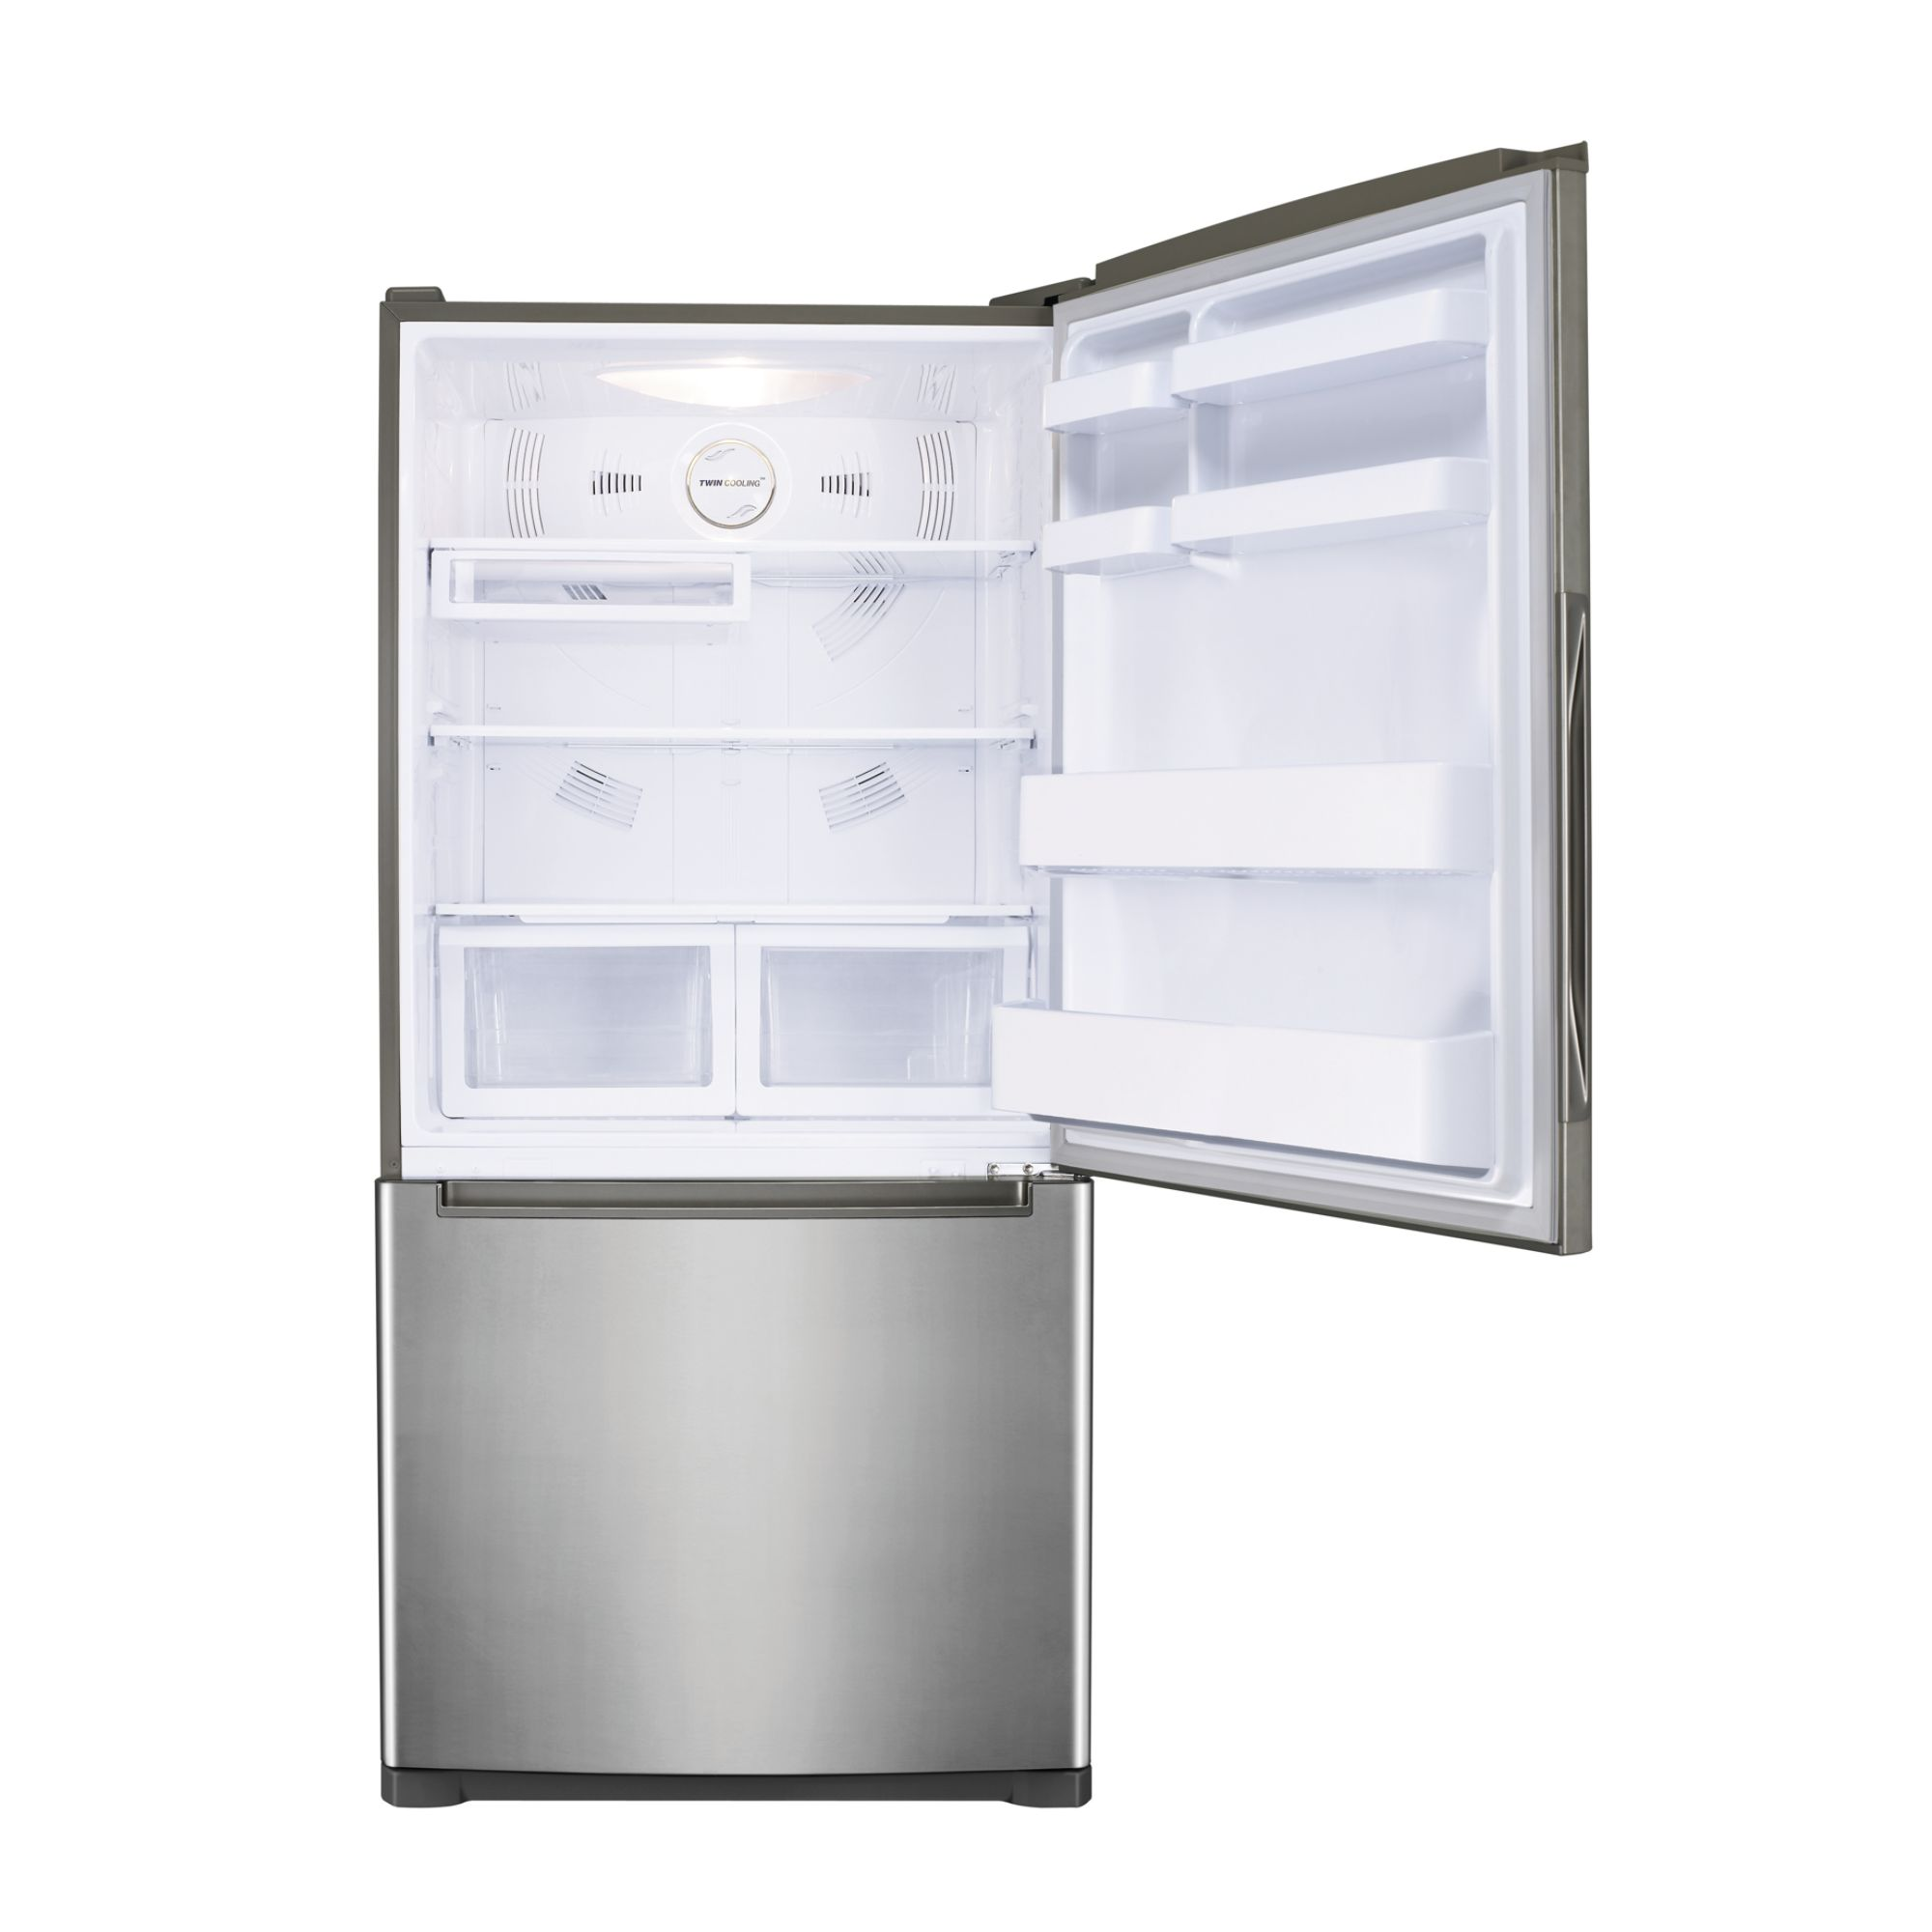 Samsung 18 cu. ft. Bottom Freezer w/ Side Swing Freezer Door - Stainless Platinum